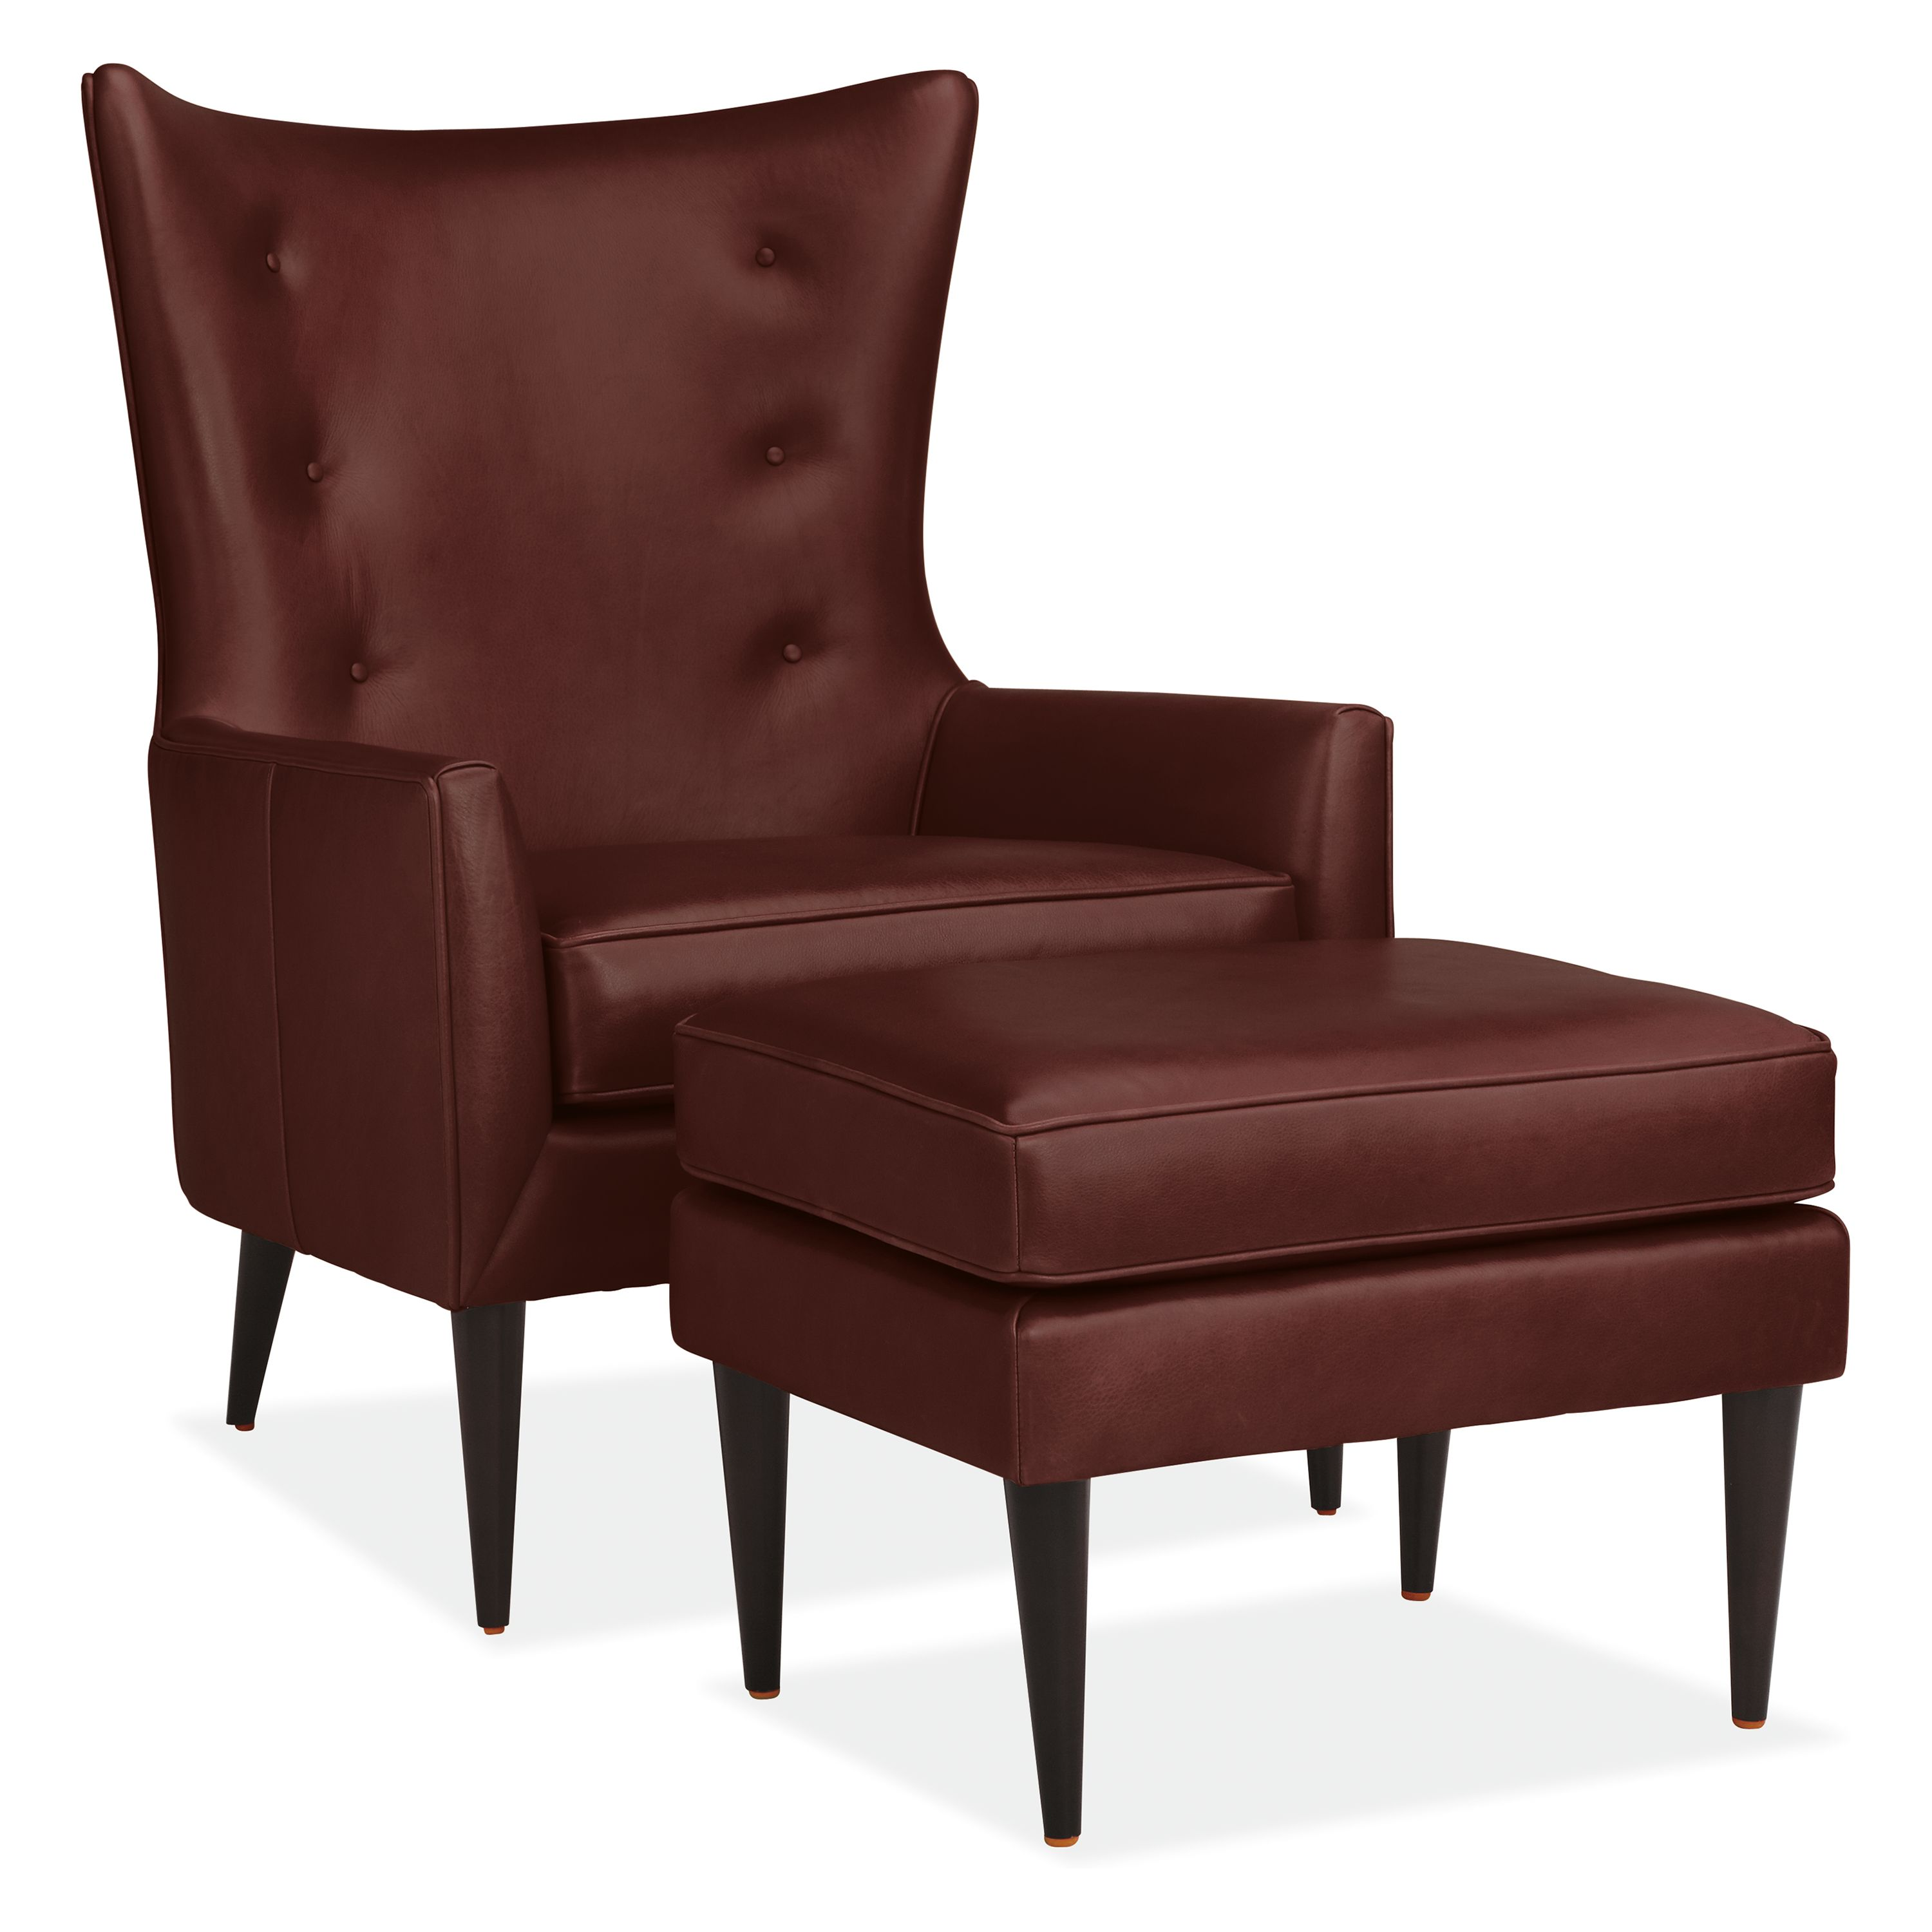 Wondrous Room Board Louis Leather Chair Ottoman Products Short Links Chair Design For Home Short Linksinfo